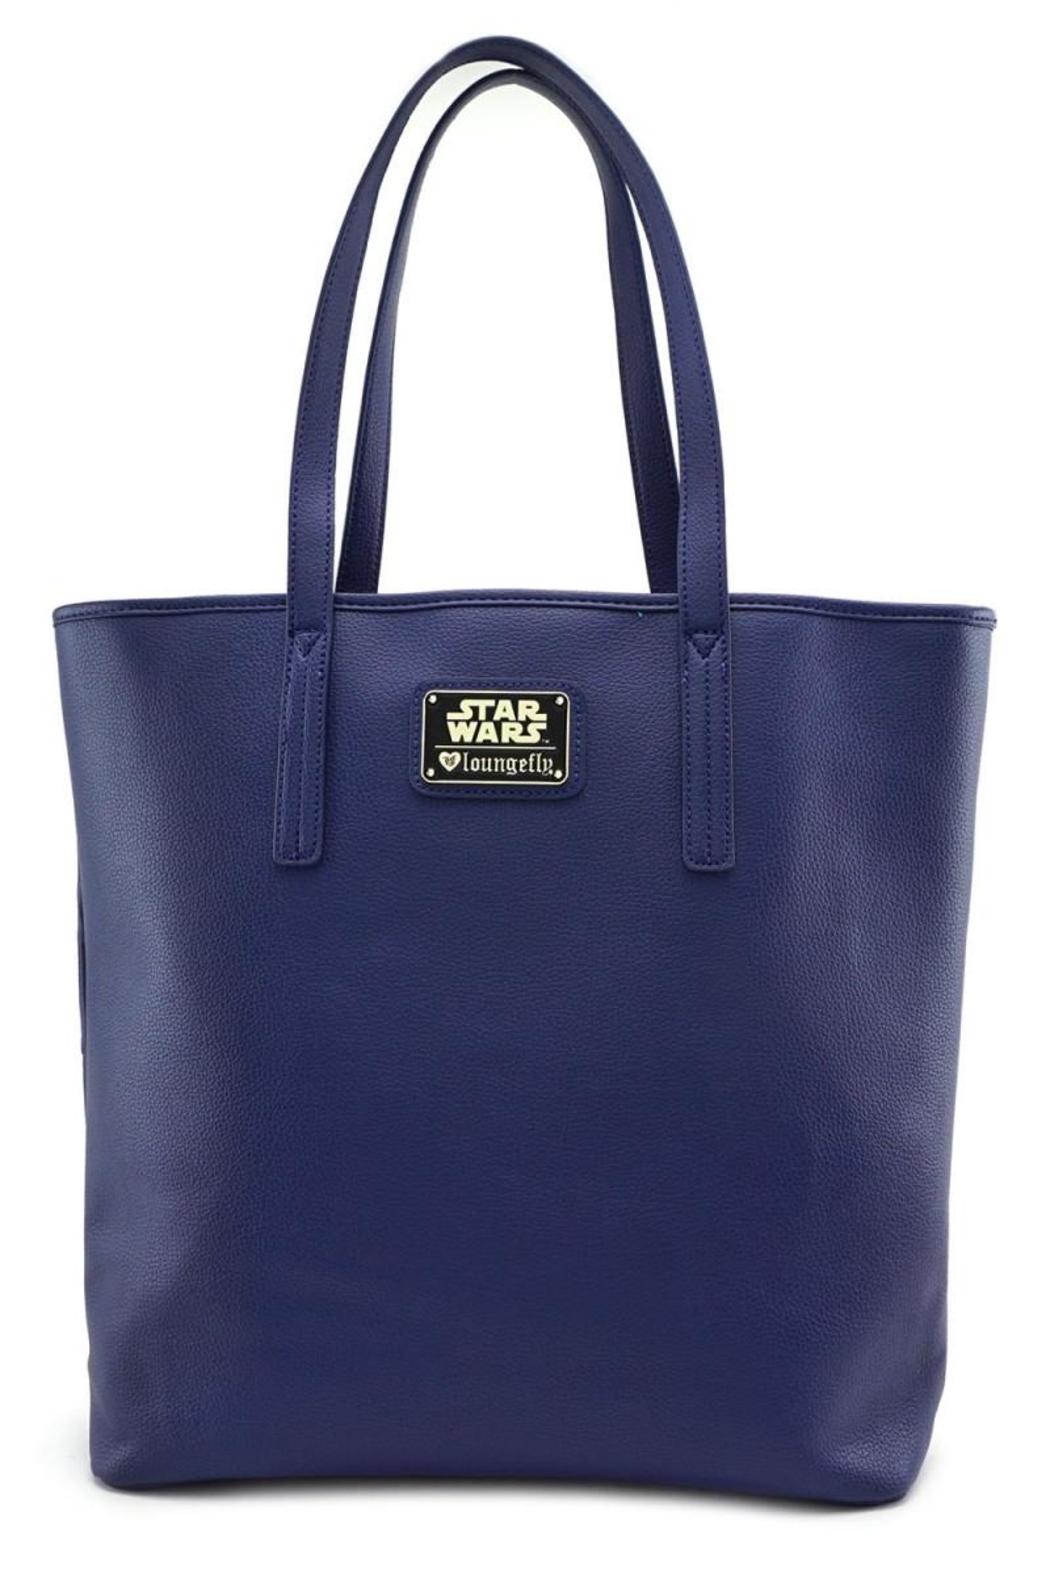 Loungefly R2d2 Embossed Tote-Bag - Front Full Image